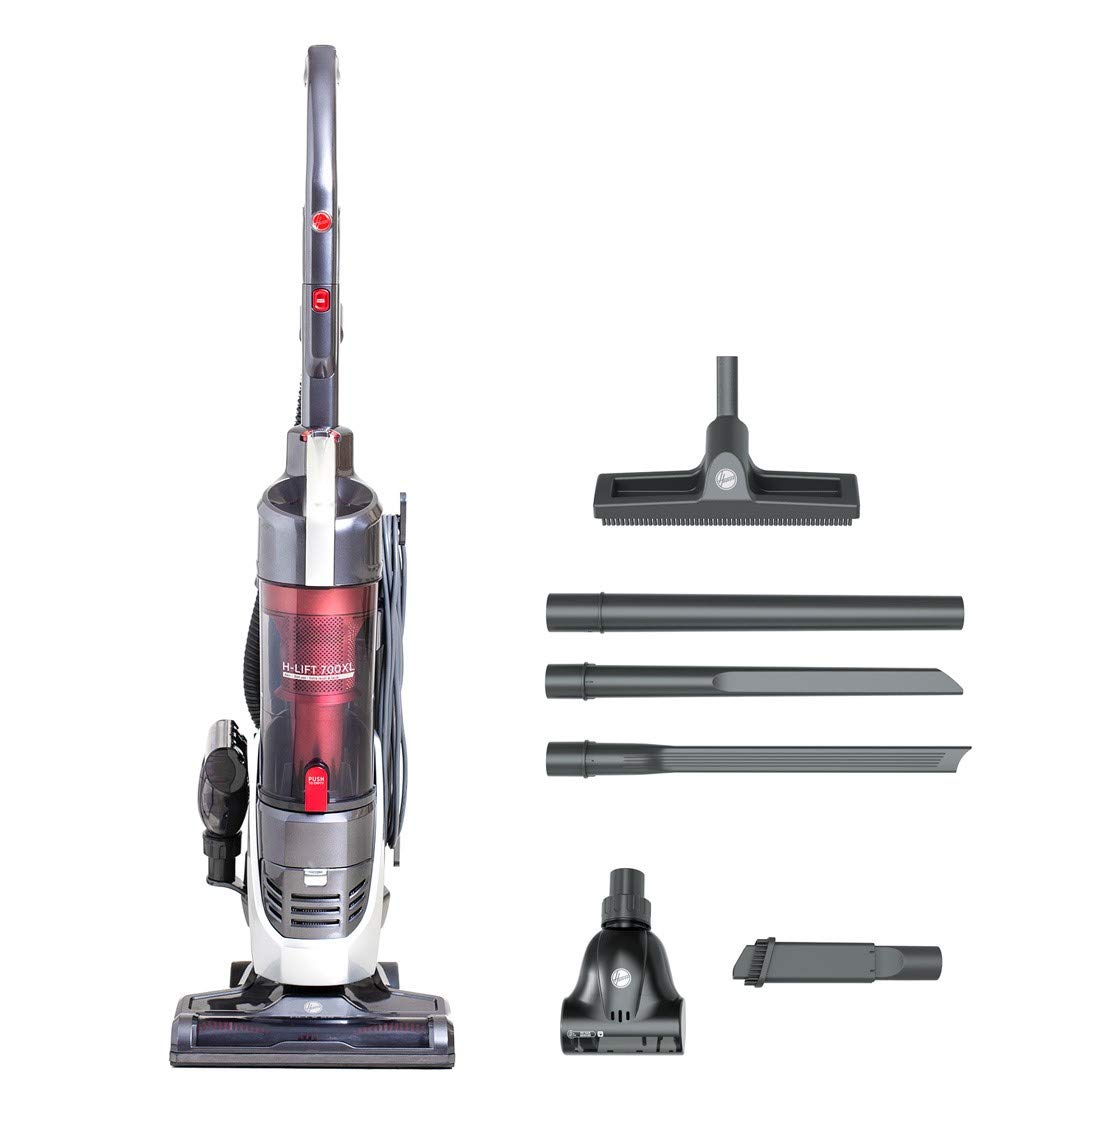 Hoover H-Lift 700 Pets XL 3in1 Upright Bagless Vacuum Cleaner, HL700PXL, Lift-Out, Stick, Powerful, HEPA, Extra Tools - Grey/Red